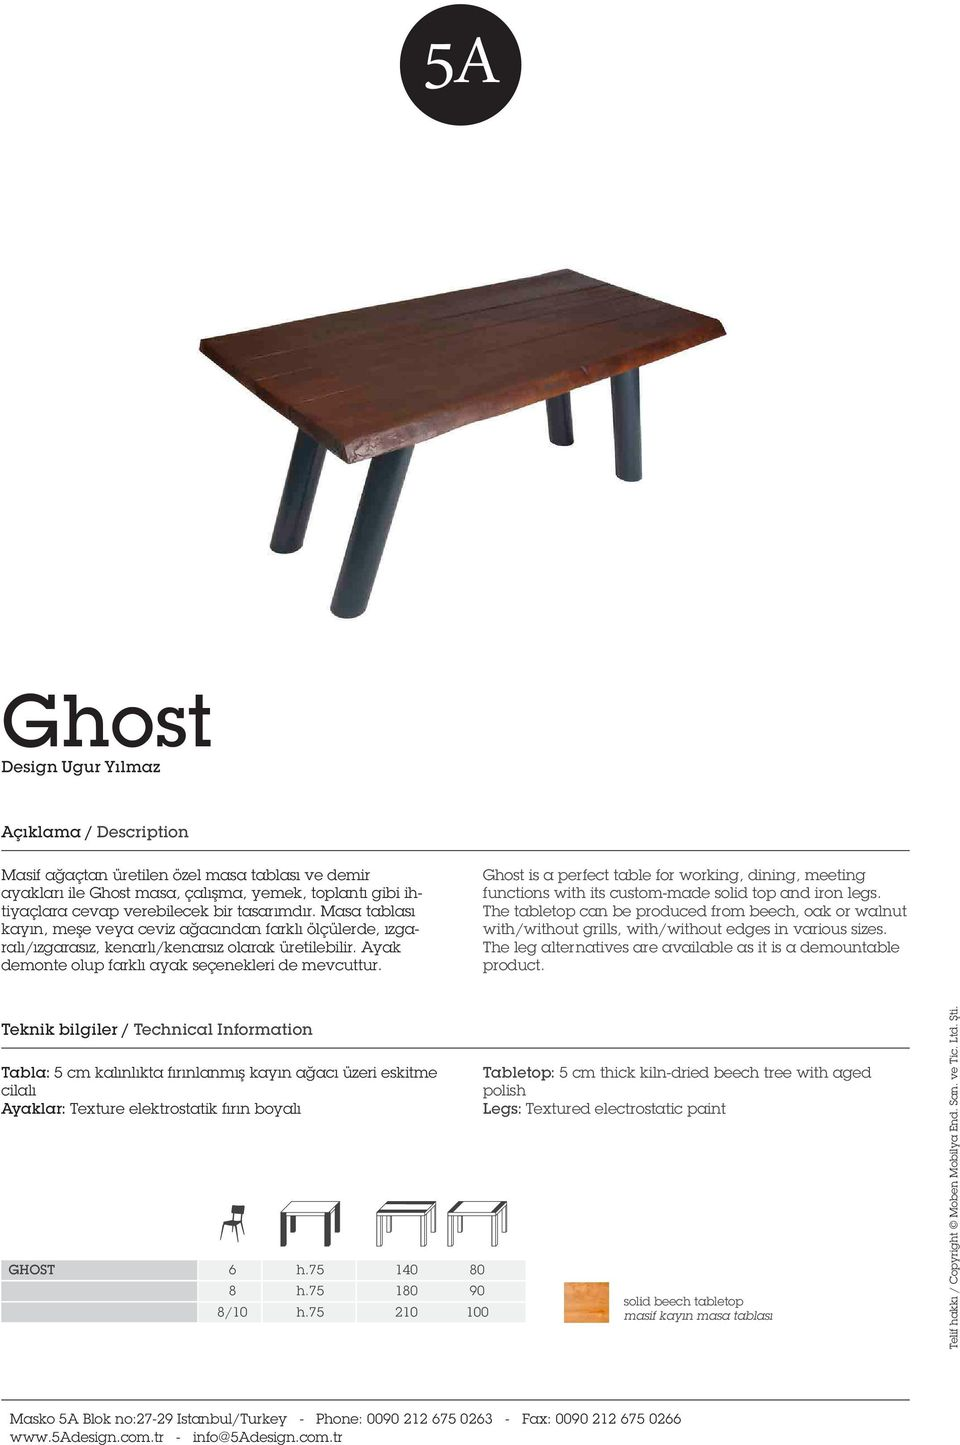 Ghost is a perfect table for working, dining, meeting functions with its custom-made solid top and iron legs.